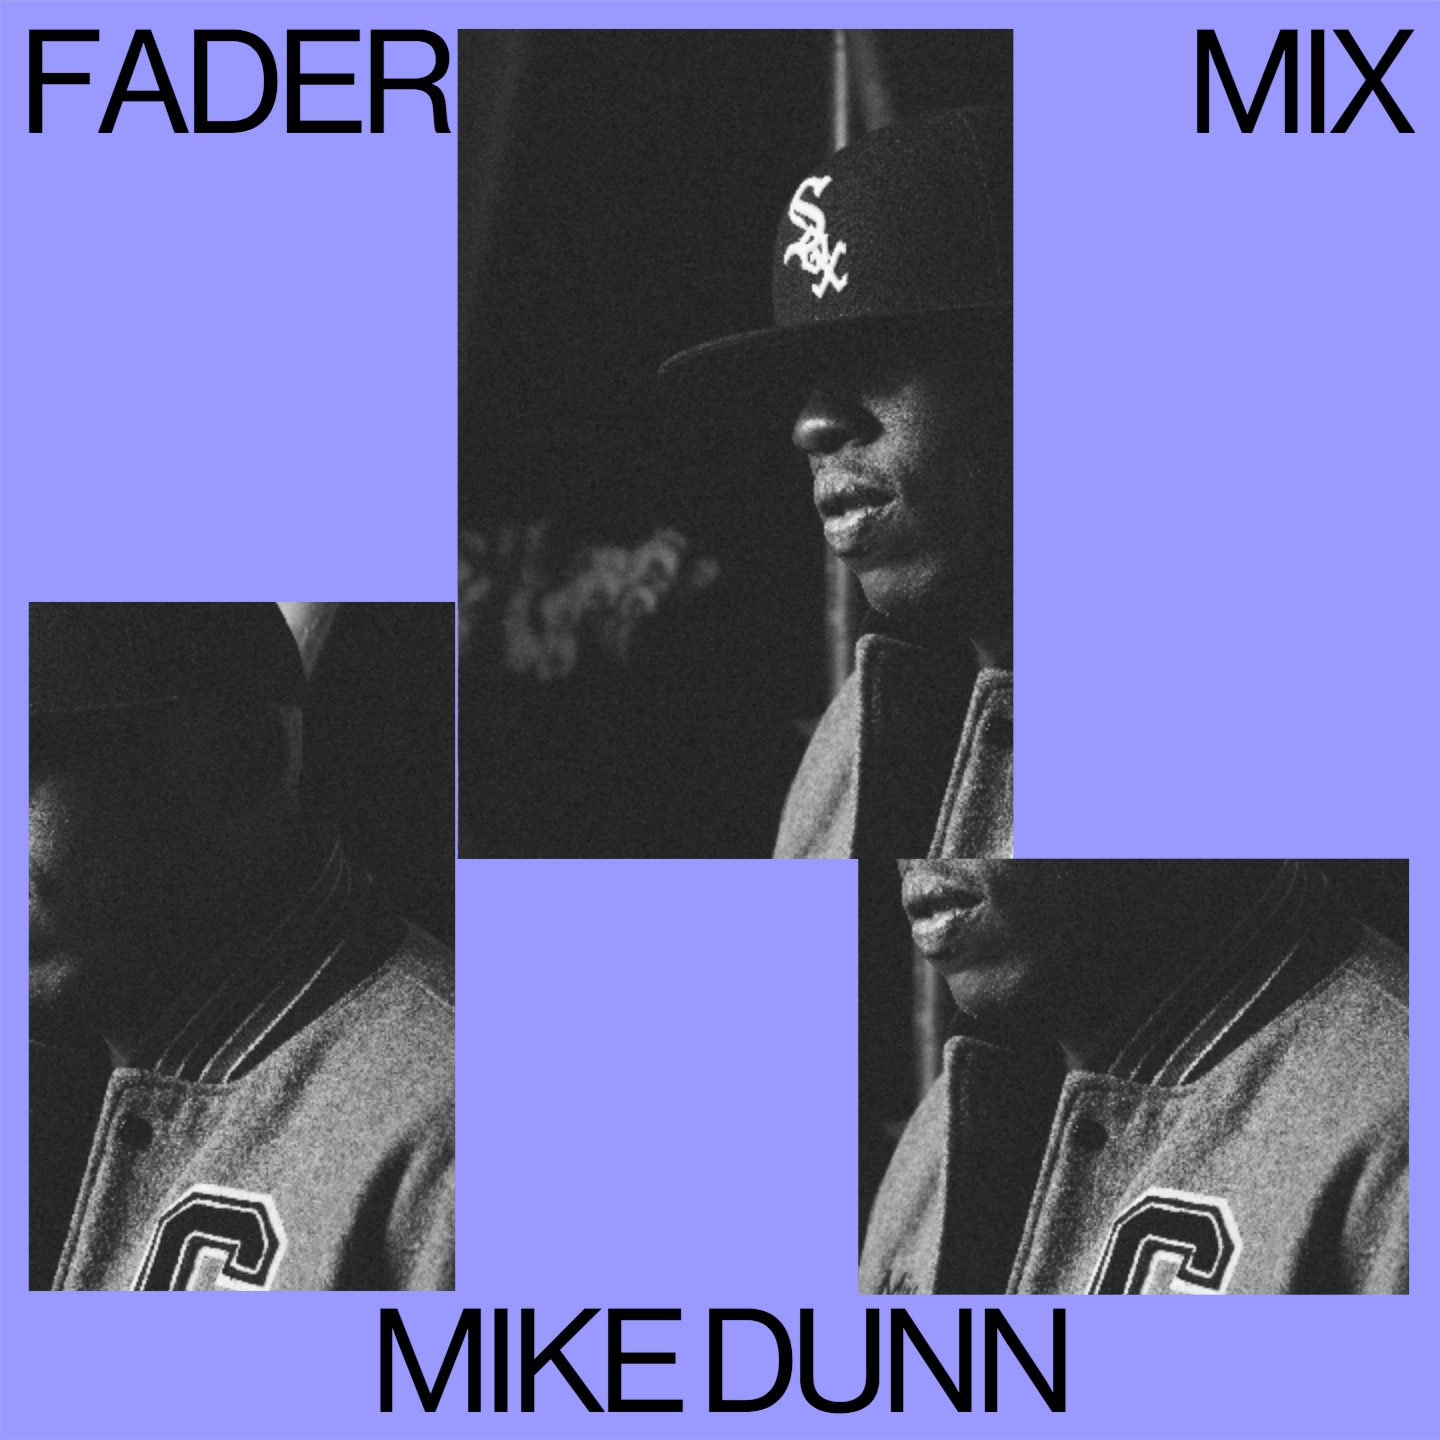 FADER Mix: Mike Dunn